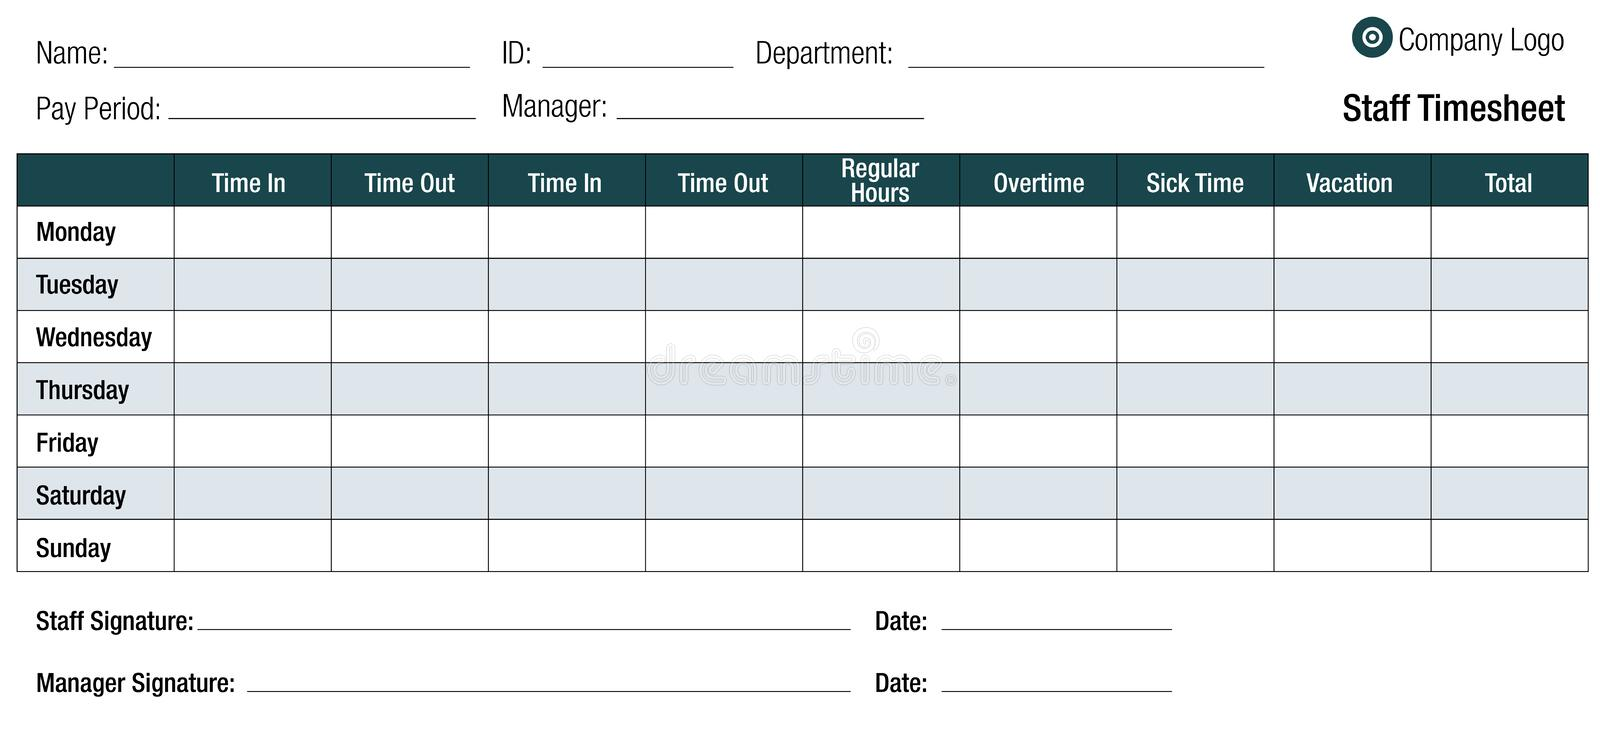 Time Sheet Template Table For Employees. An image of a employee time sheet template table for staff royalty free illustration